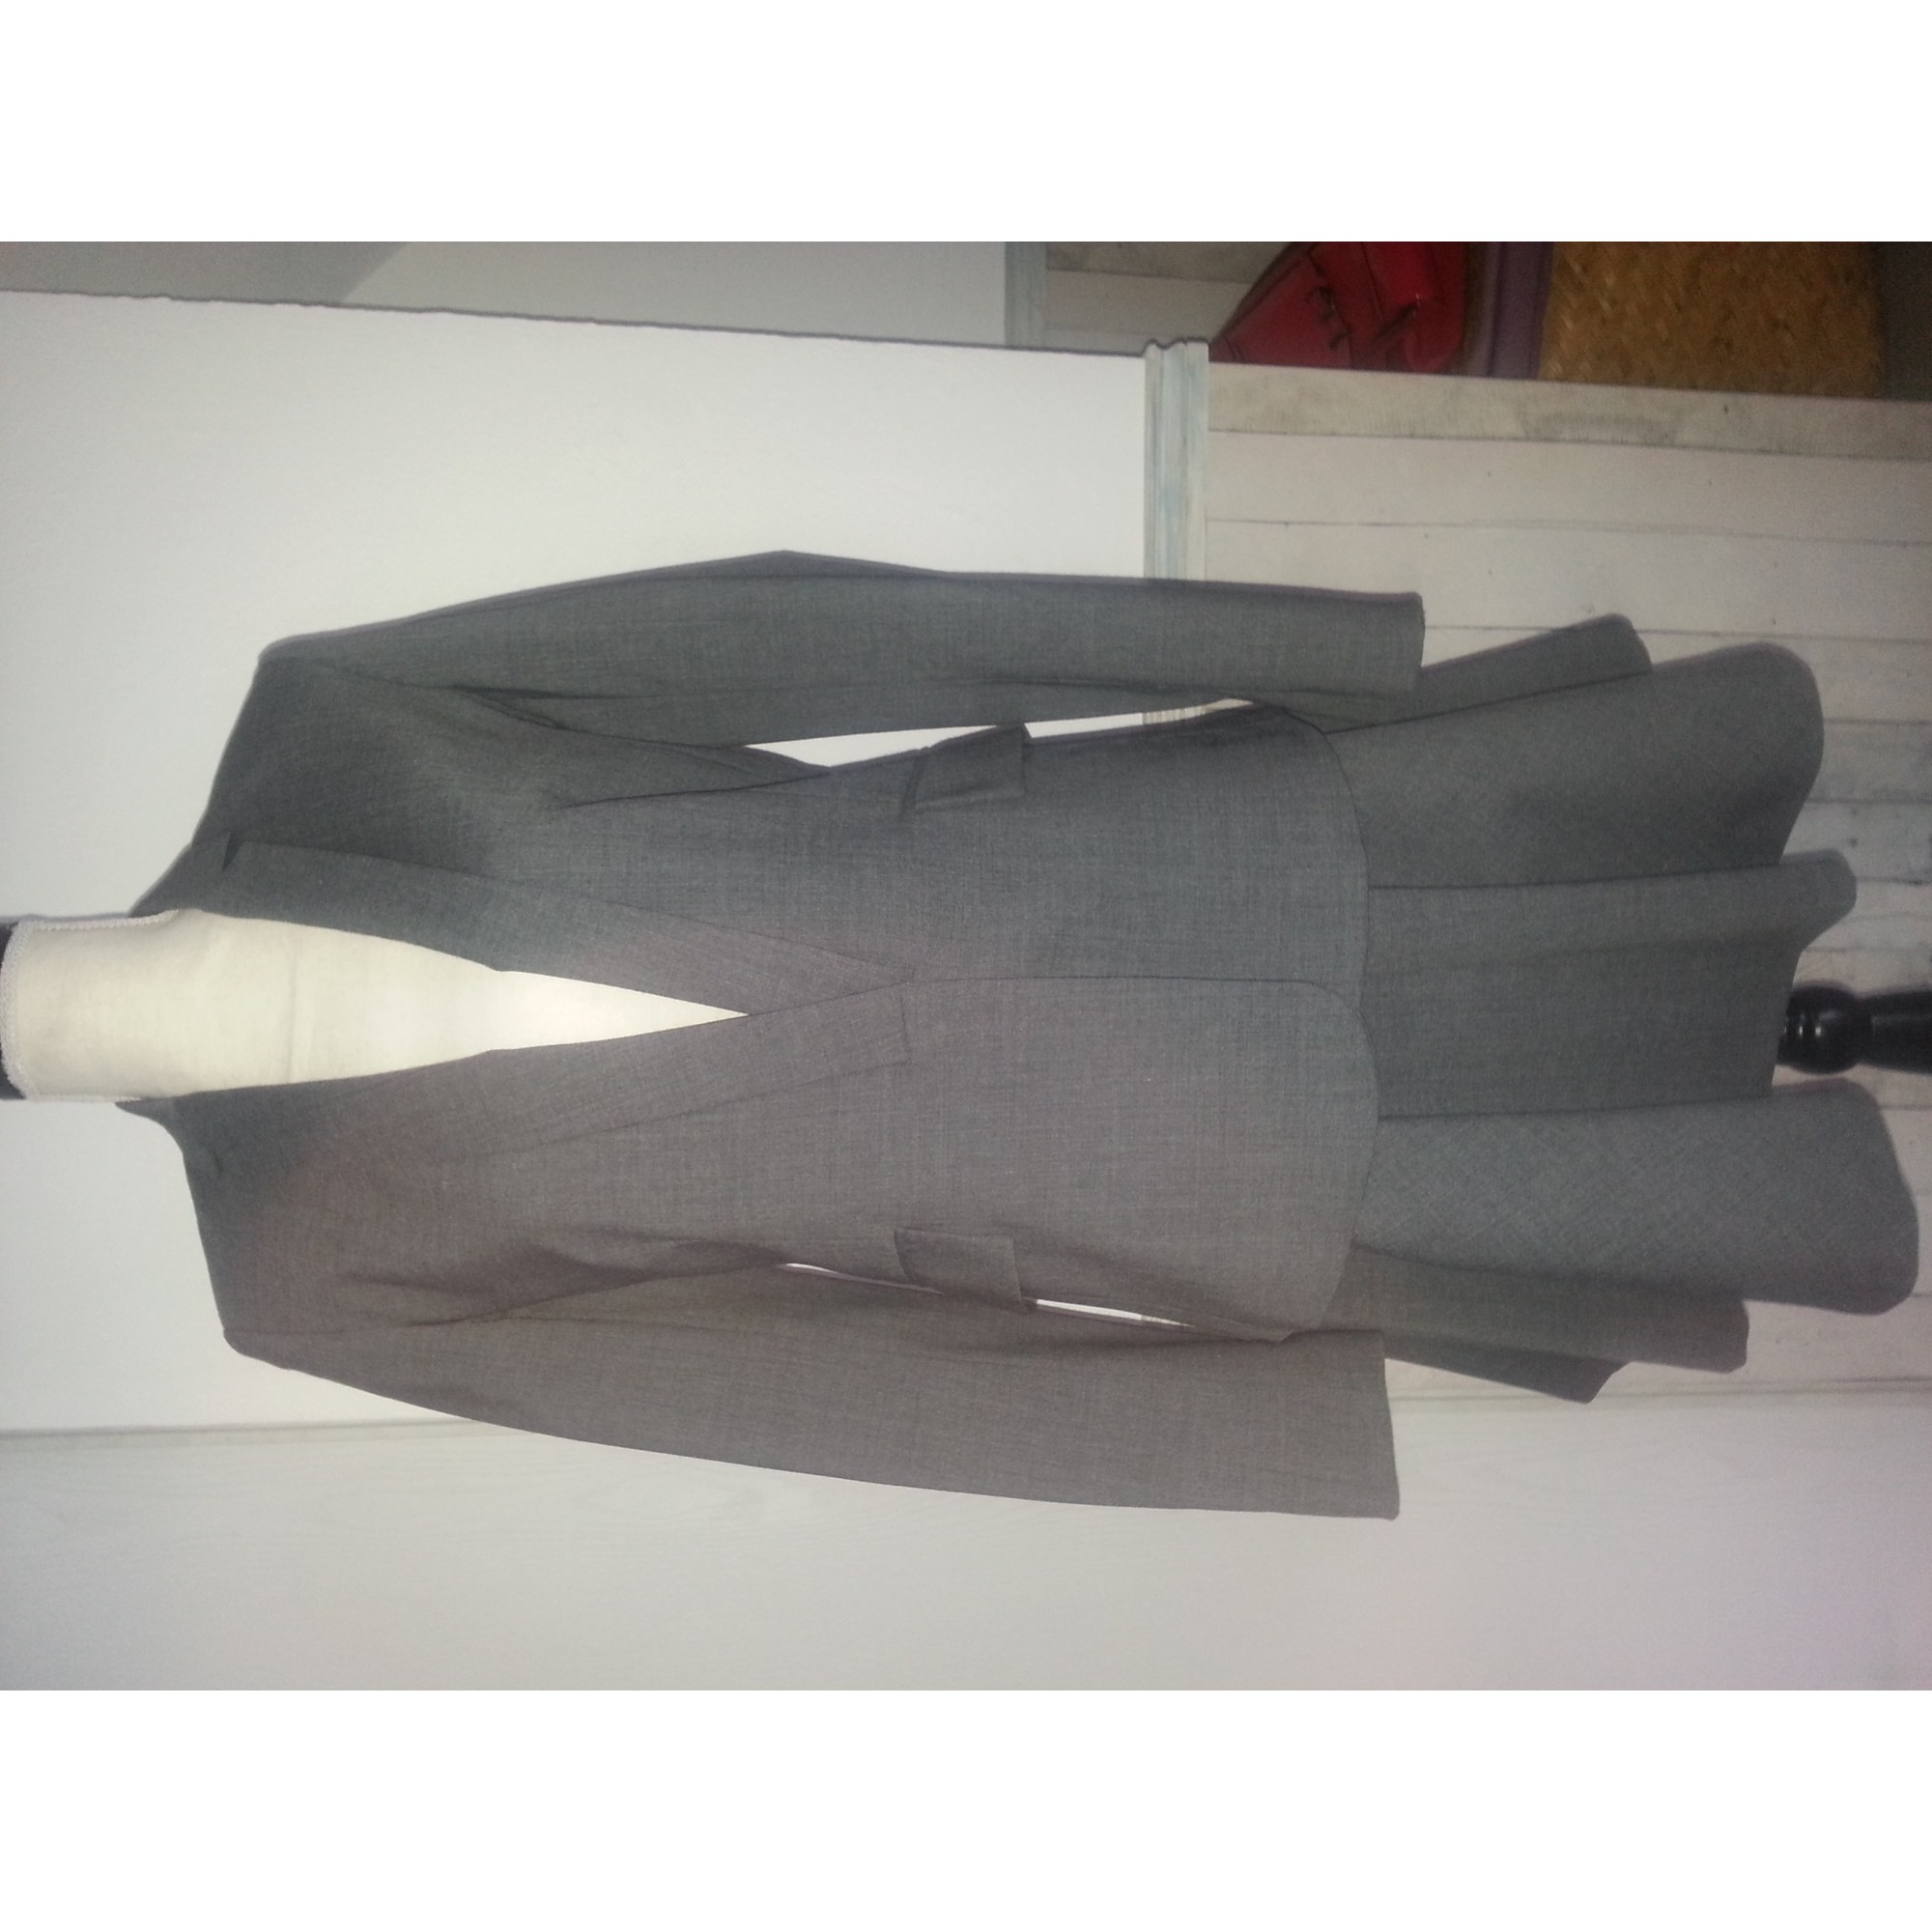 Tailleur jupe SINÉQUANONE Gris, anthracite